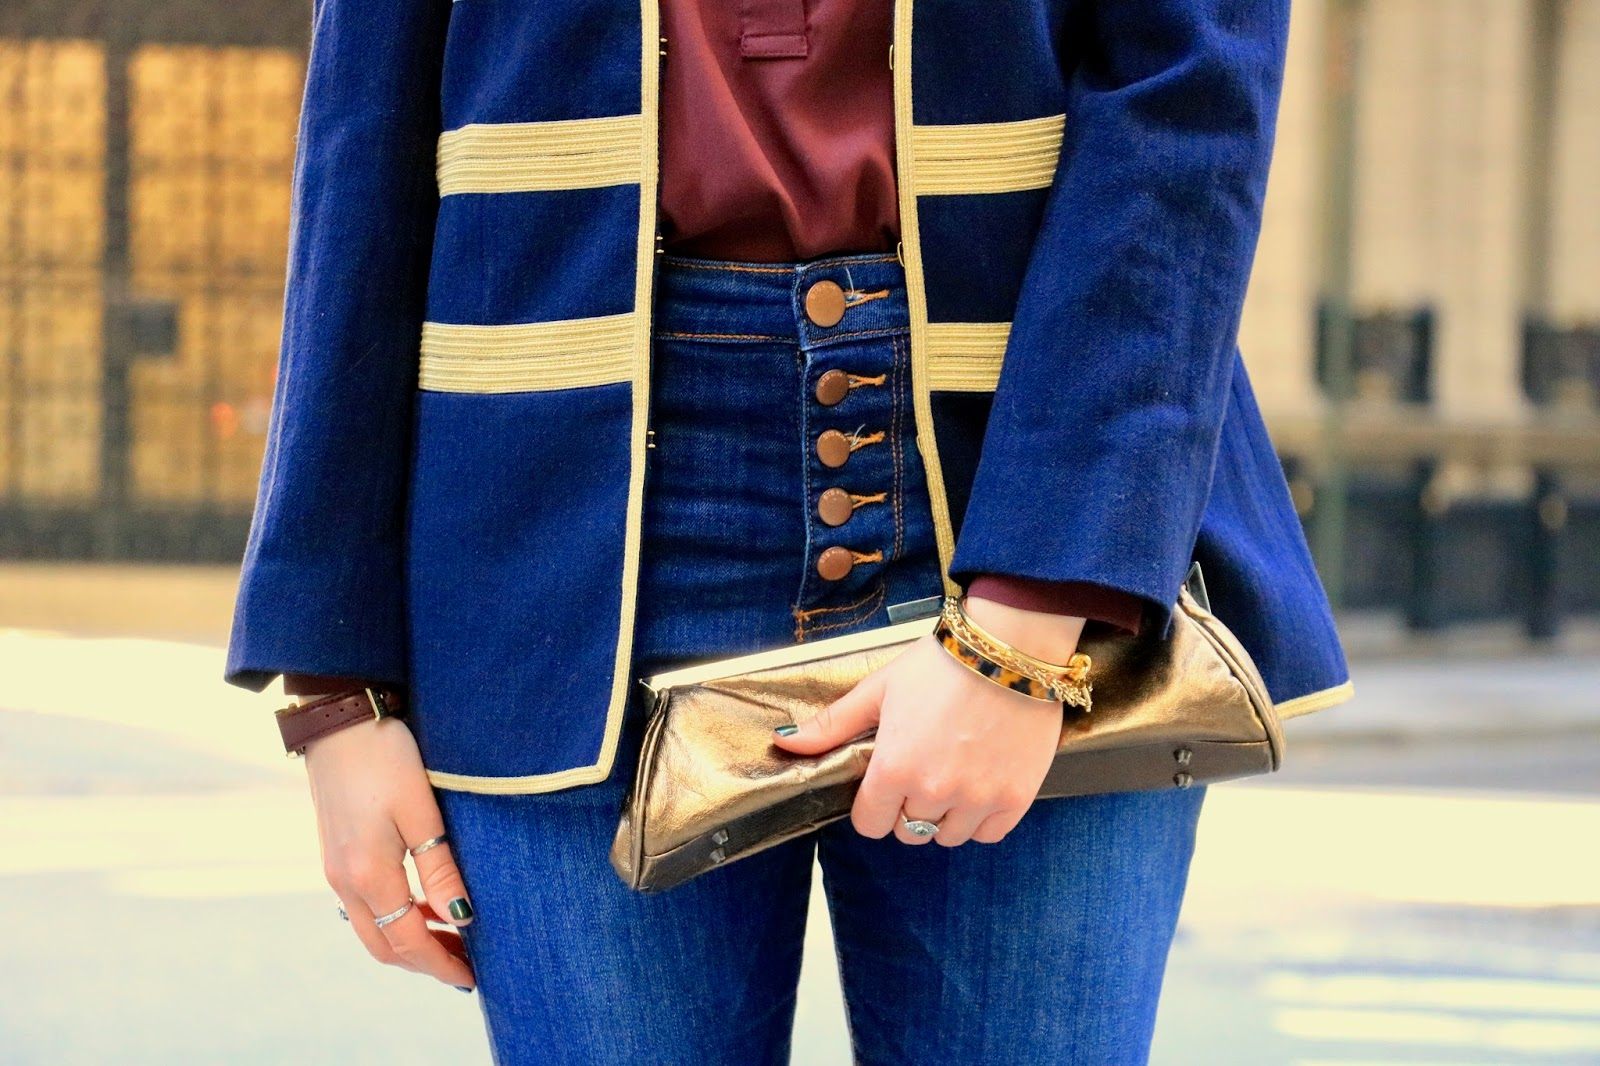 Nyc fashion blogger Kathleen Harper wearing a metallic bronze clutch